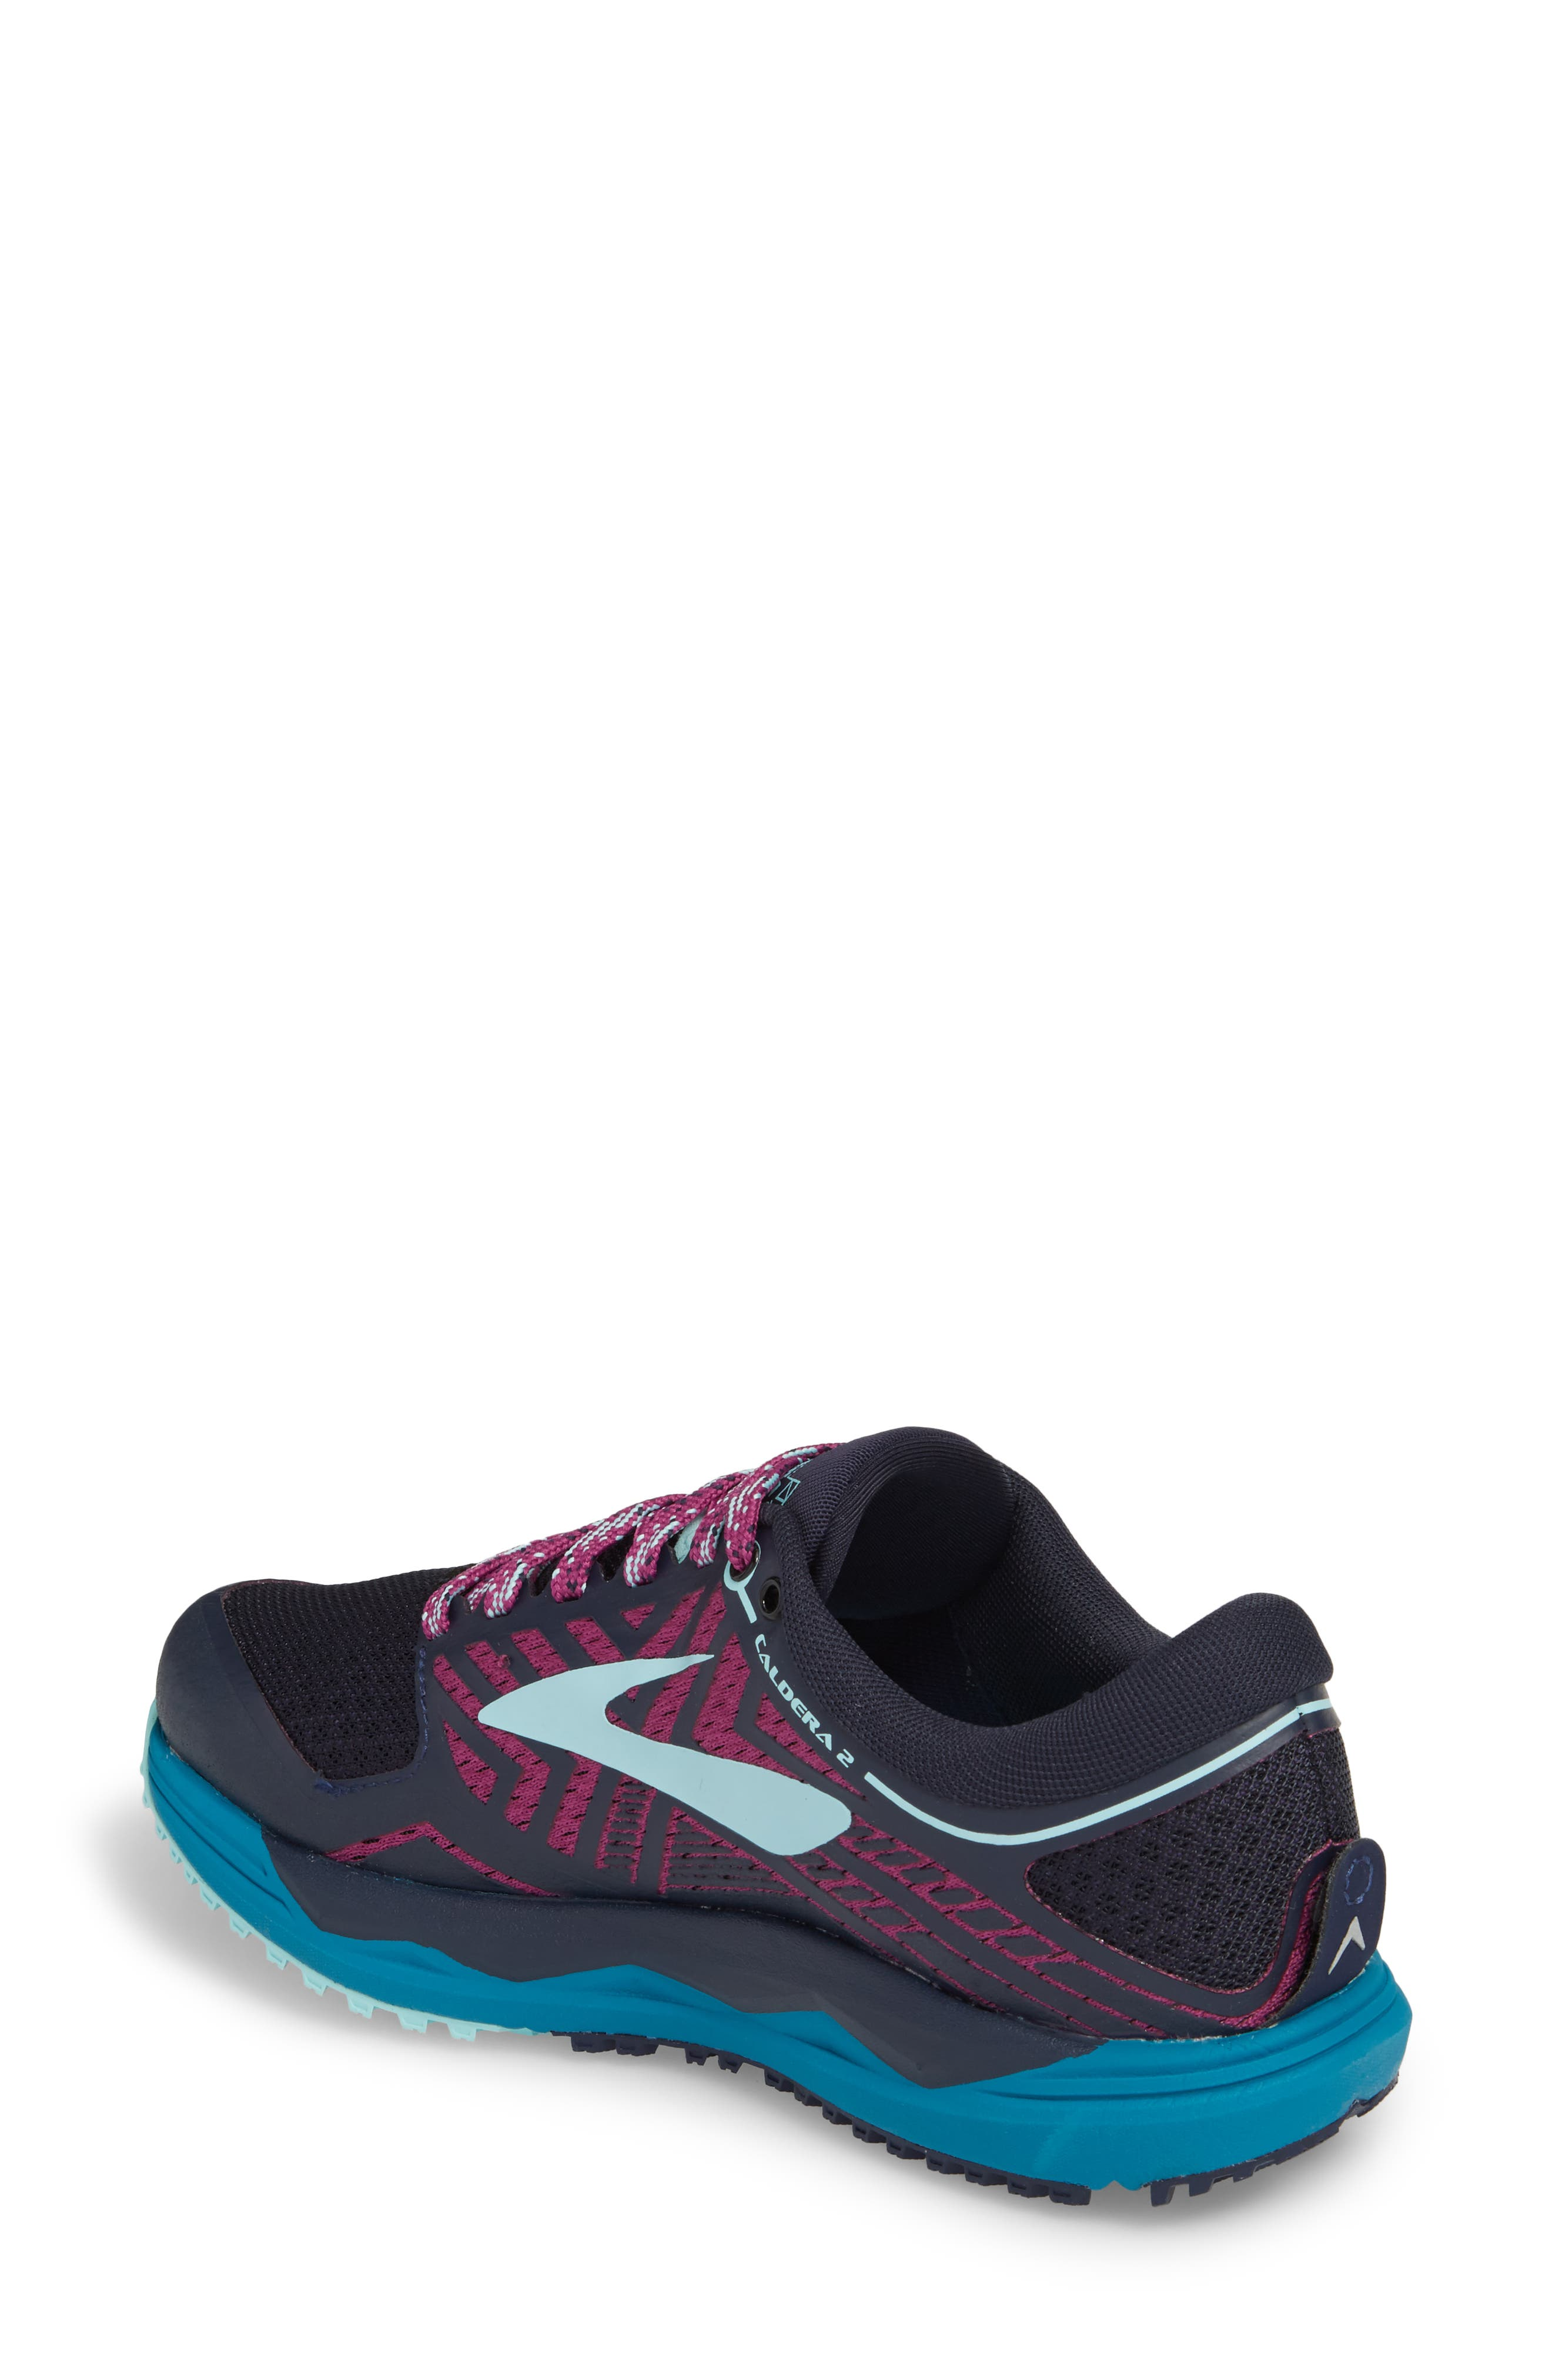 Caldera 2 Trail Running Shoe,                             Alternate thumbnail 2, color,                             NAVY/ PLUM/ ICE BLUE